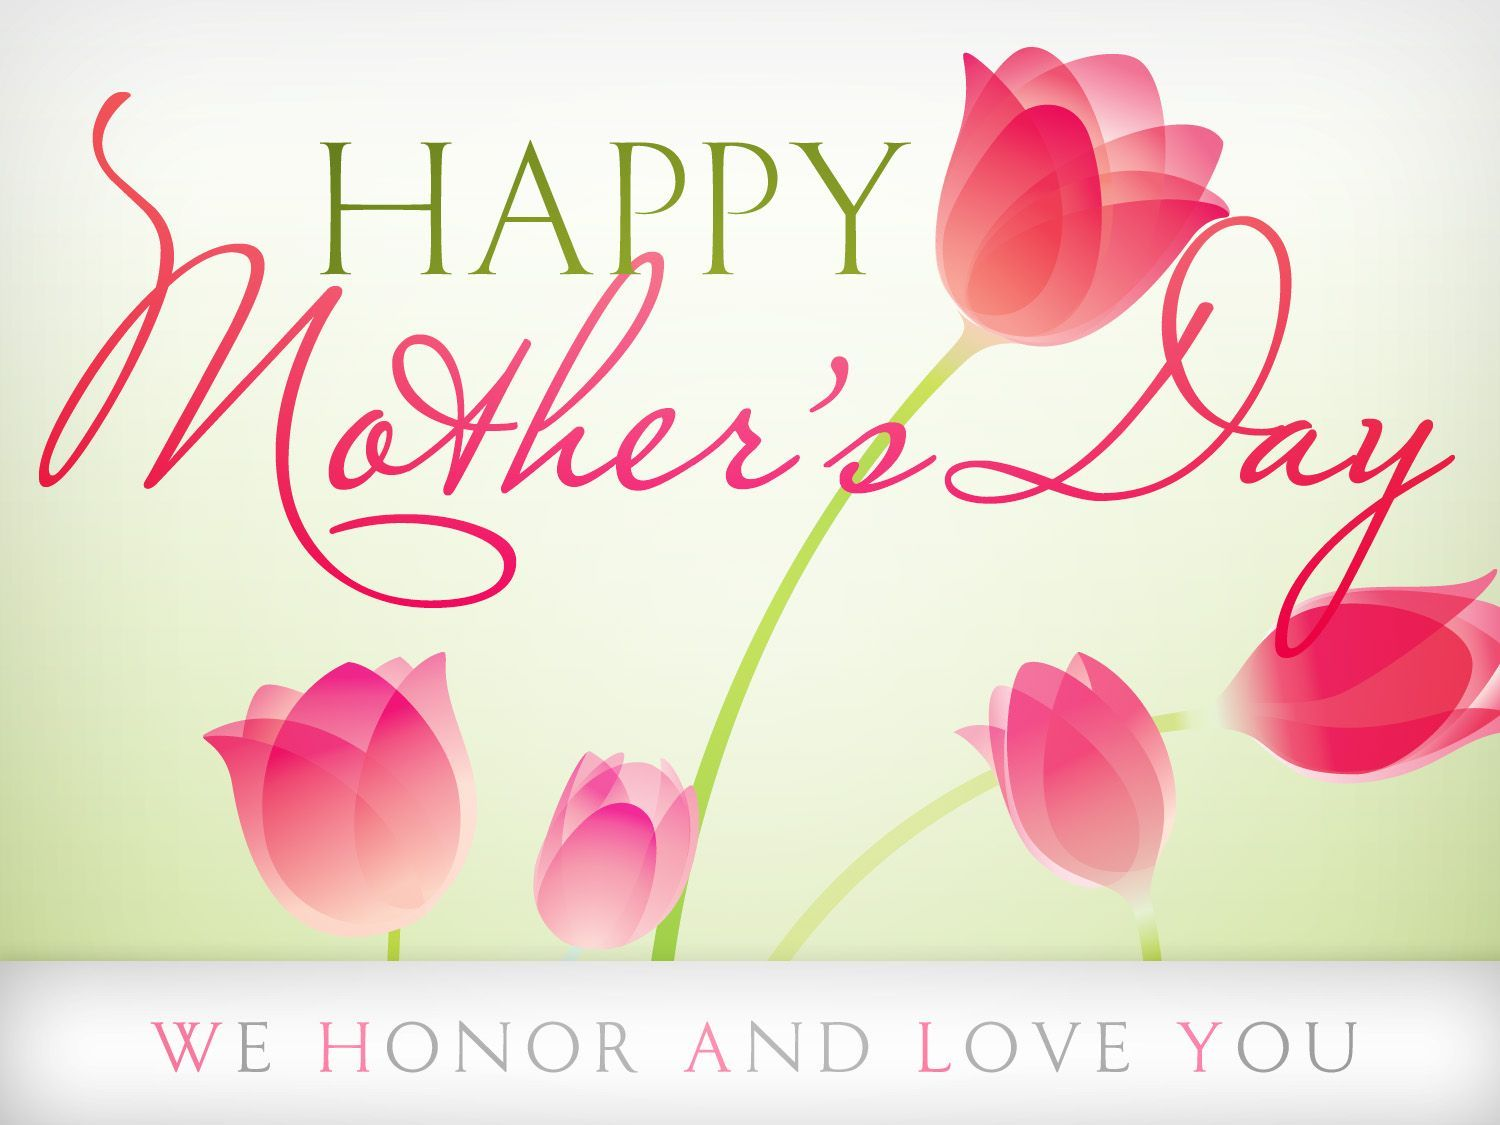 We Honor And Love You Mother Happy Mothers Day Wallpaper Mother Day Wishes Happy Mothers Day Wishes